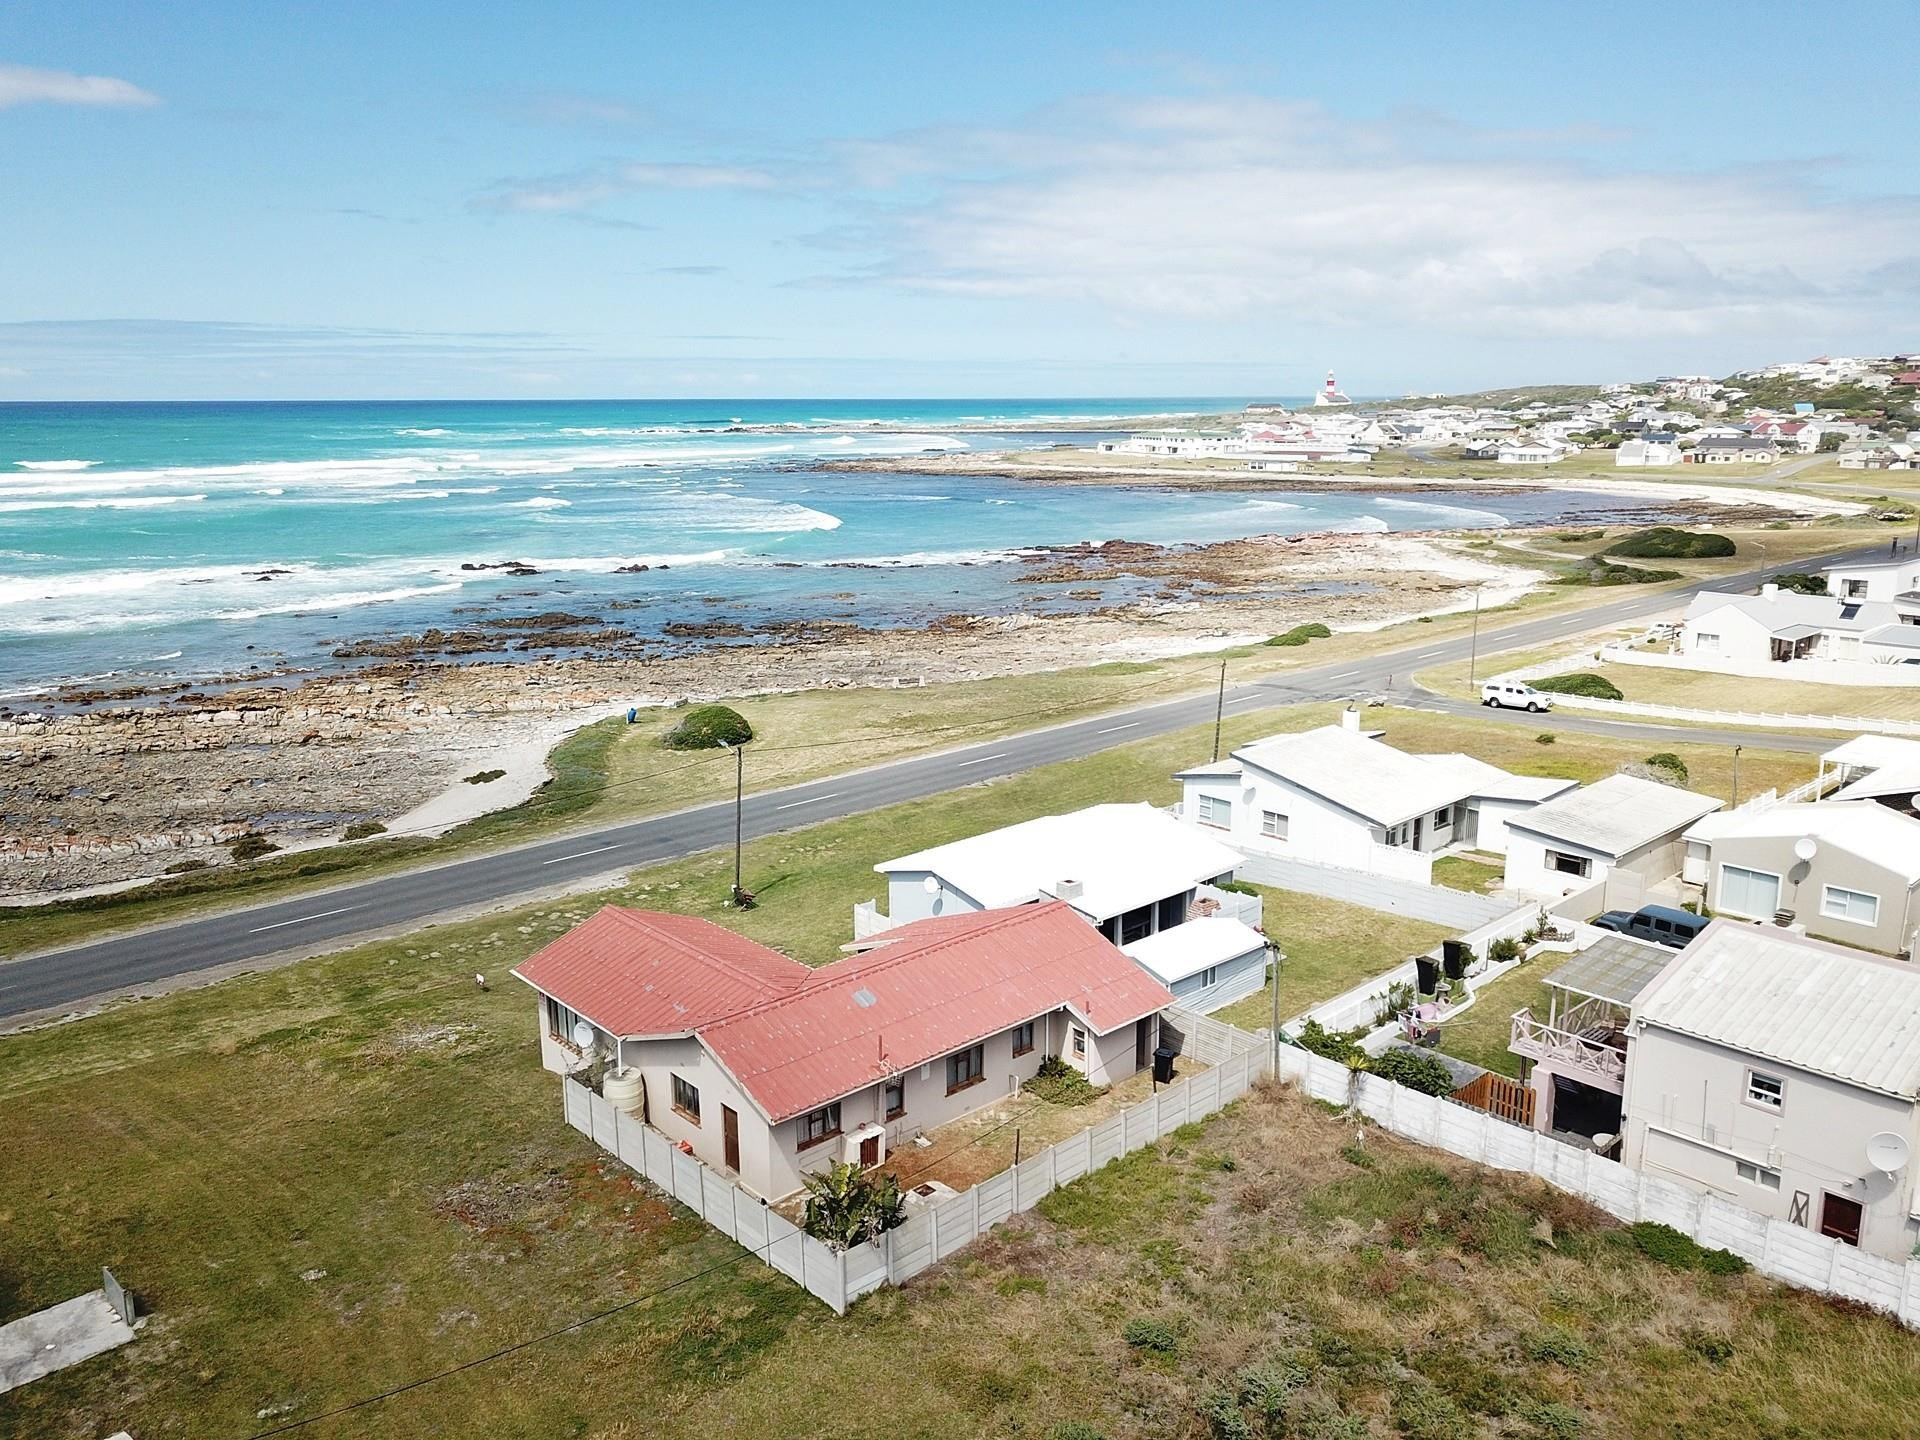 3 Bedroom House for Sale in Agulhas